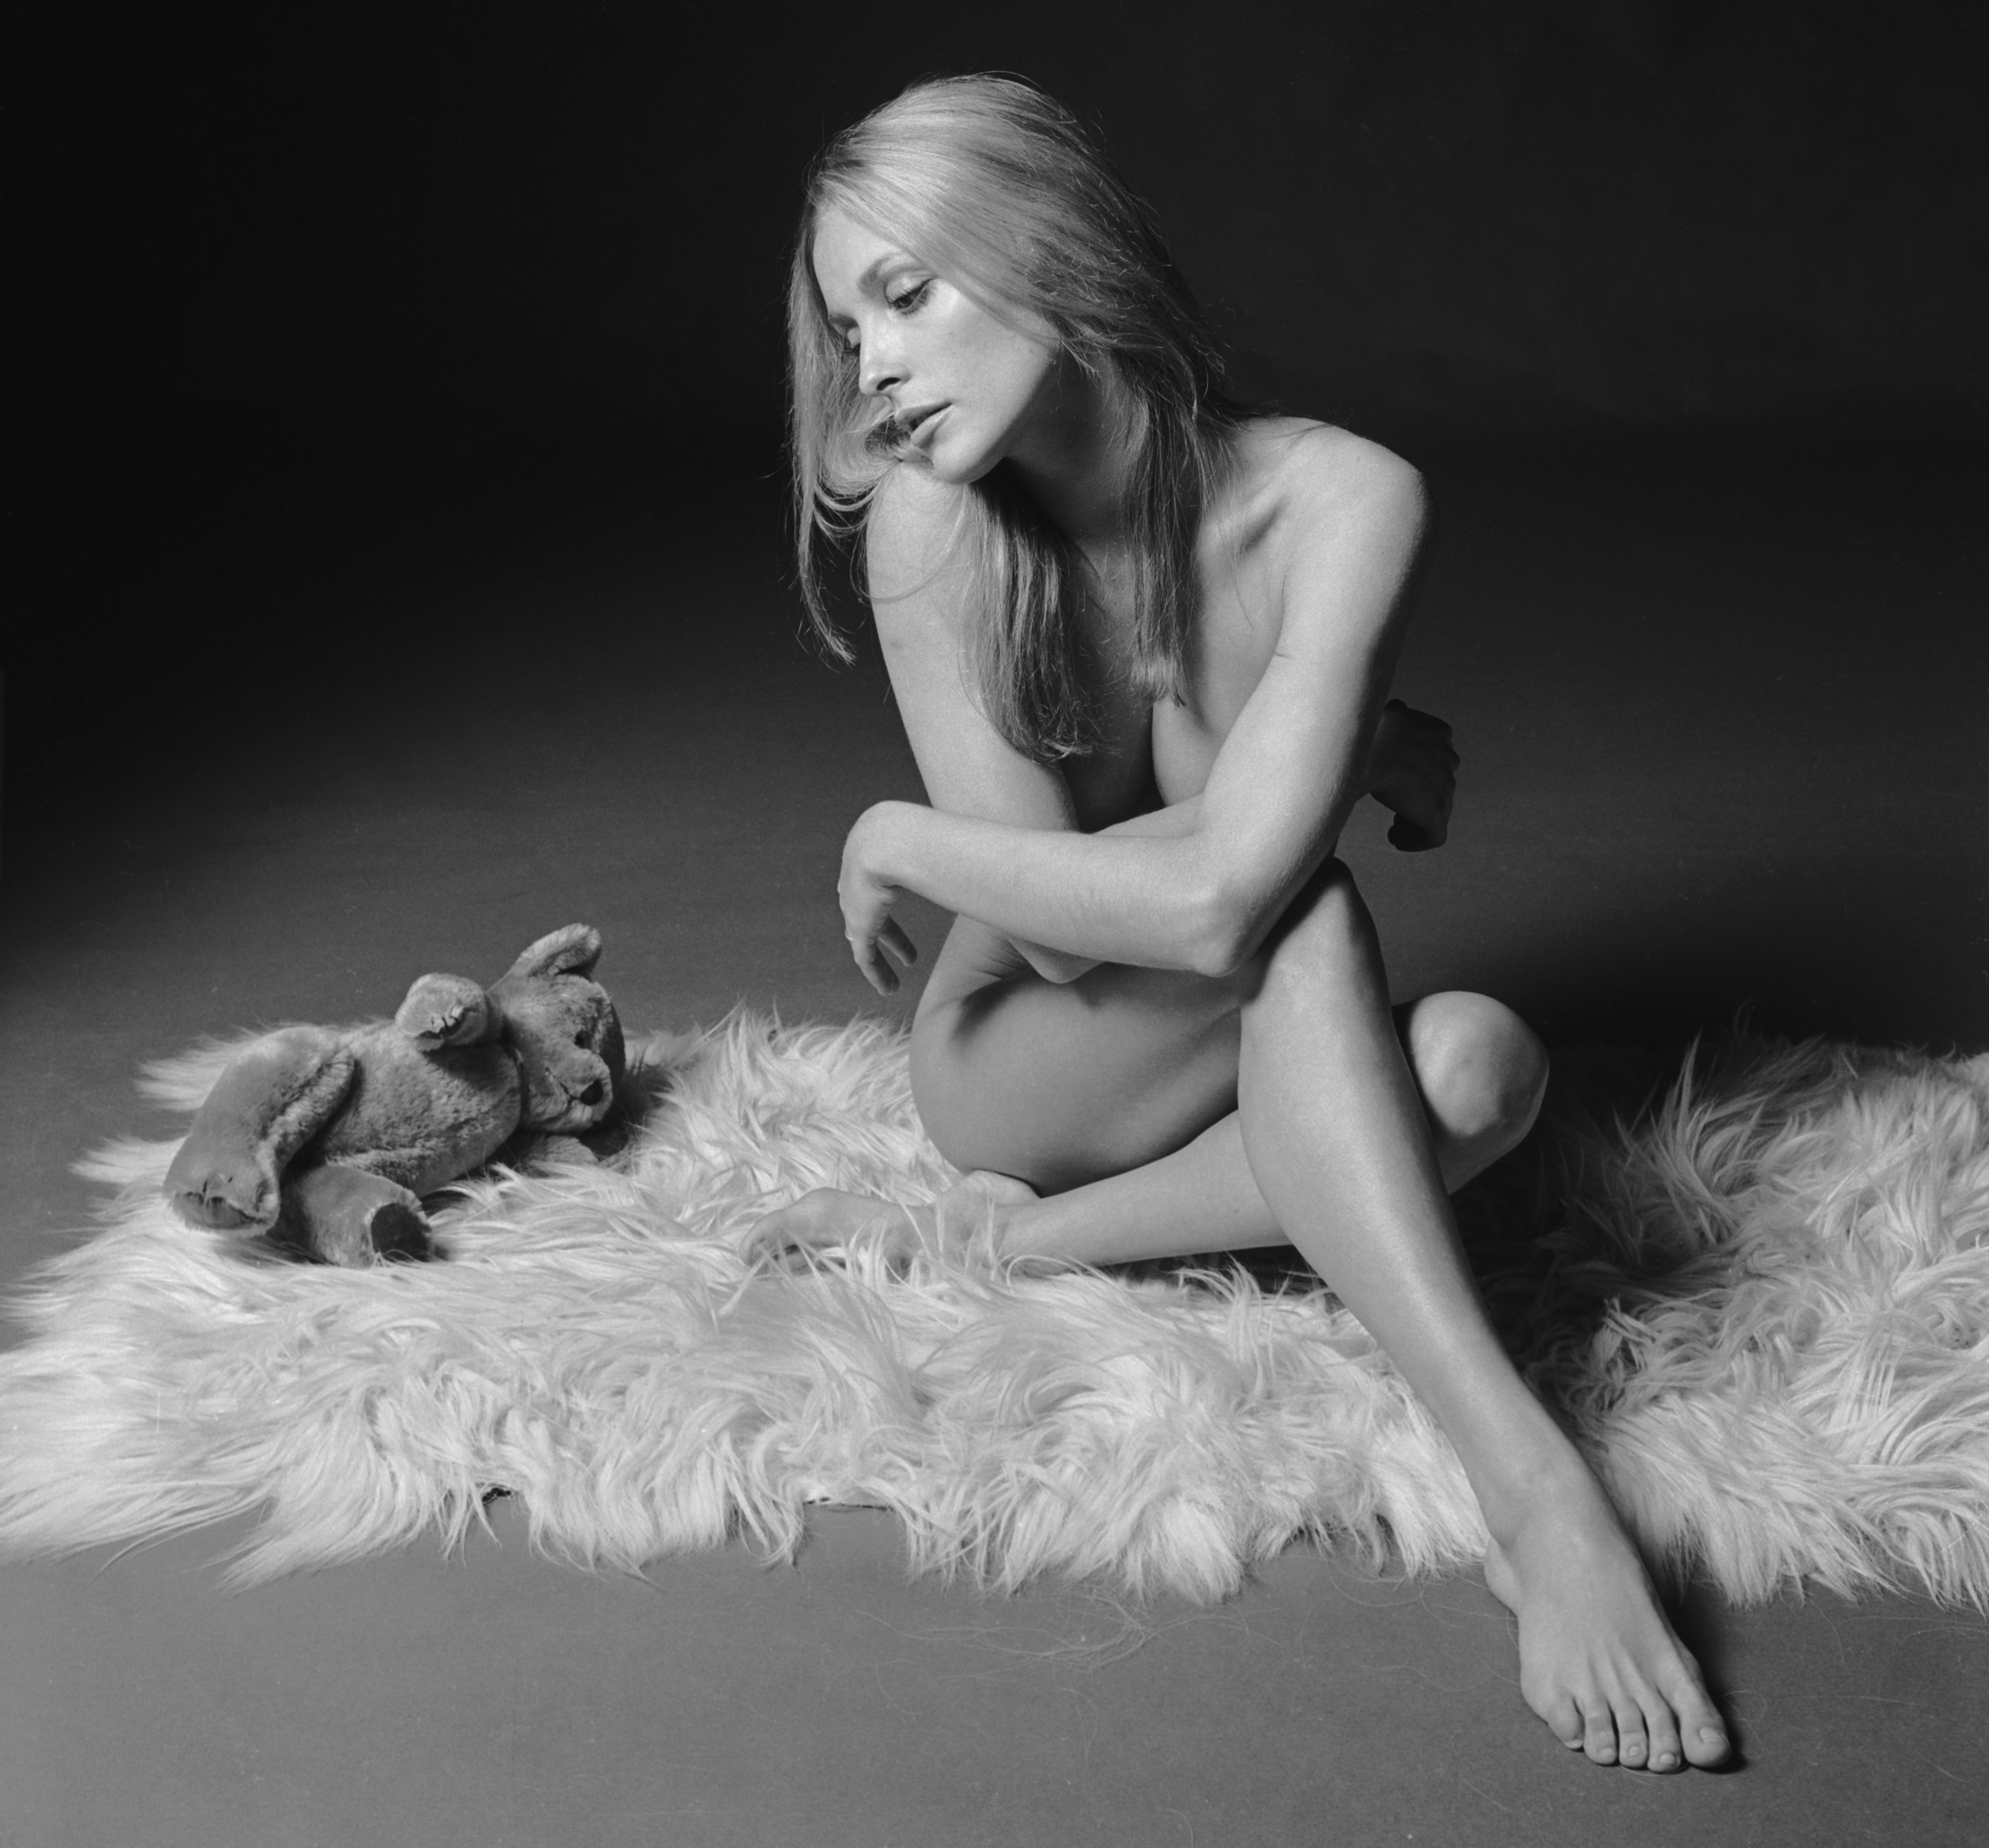 Seems me, Sharon tate feet have thought